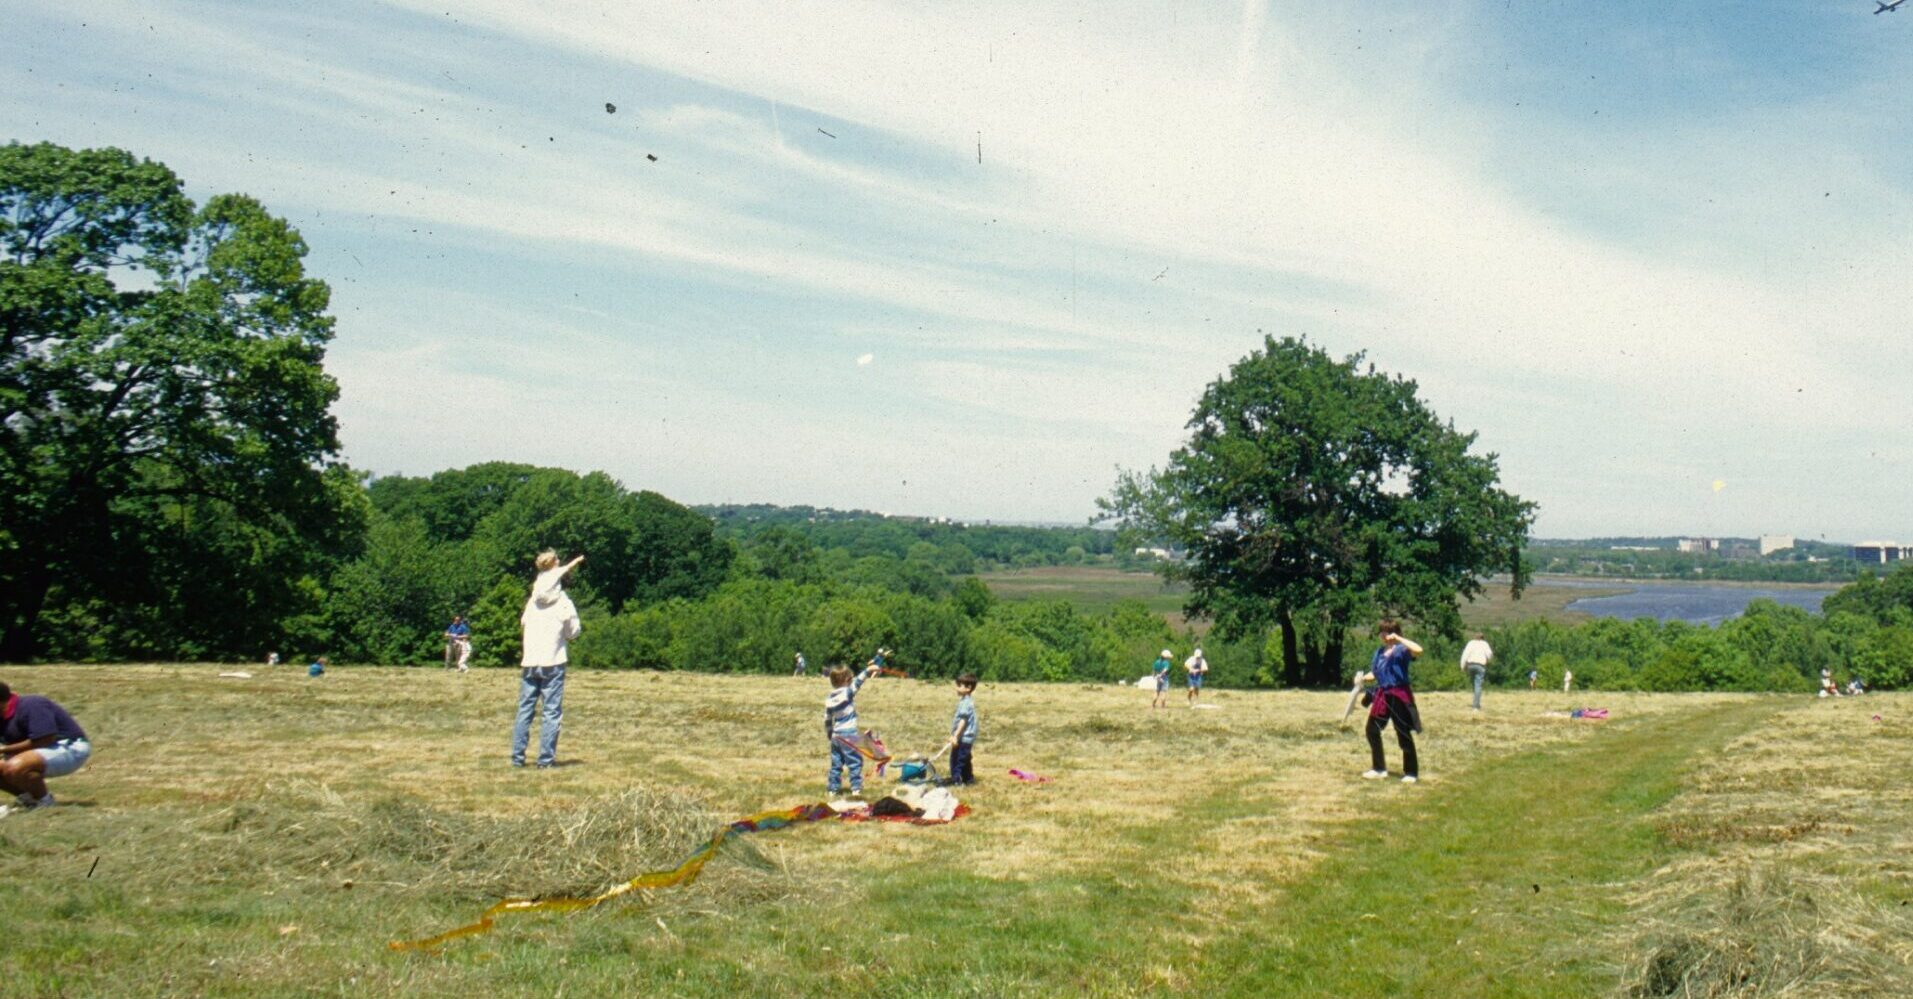 People flying kites at Pierce Reservation